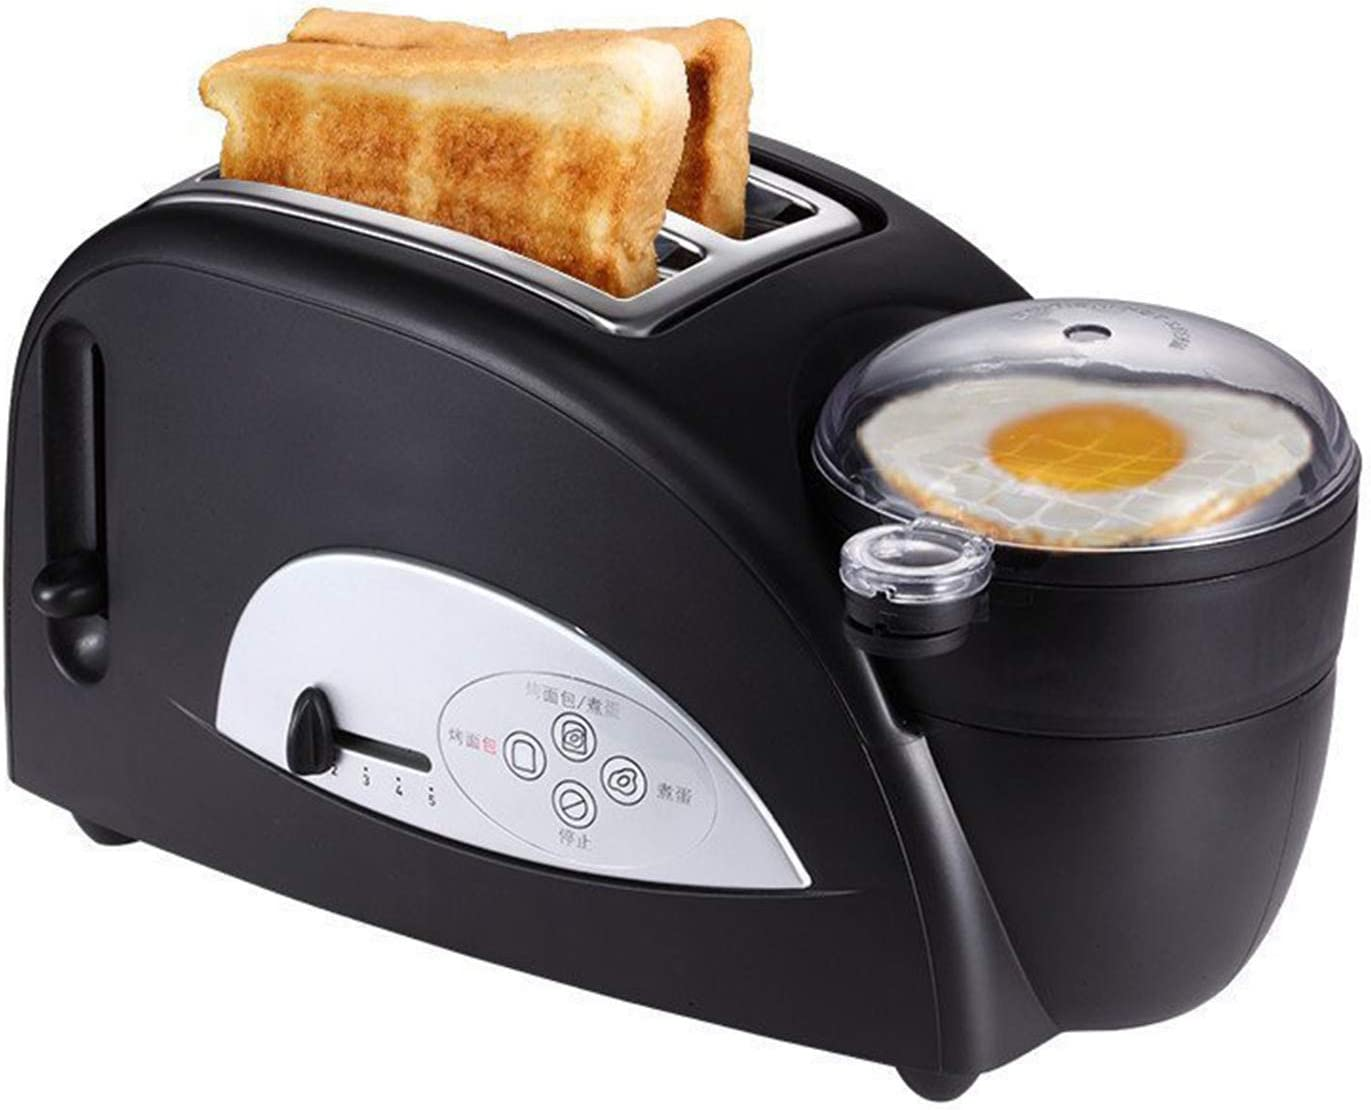 3-In-1 Multi-Function Toaster,5 Stops Roasting Color, Frying/Boiled Egg Function, Automatic Centering, Bottom Crumb Tray,Home Smart Breakfast Machine